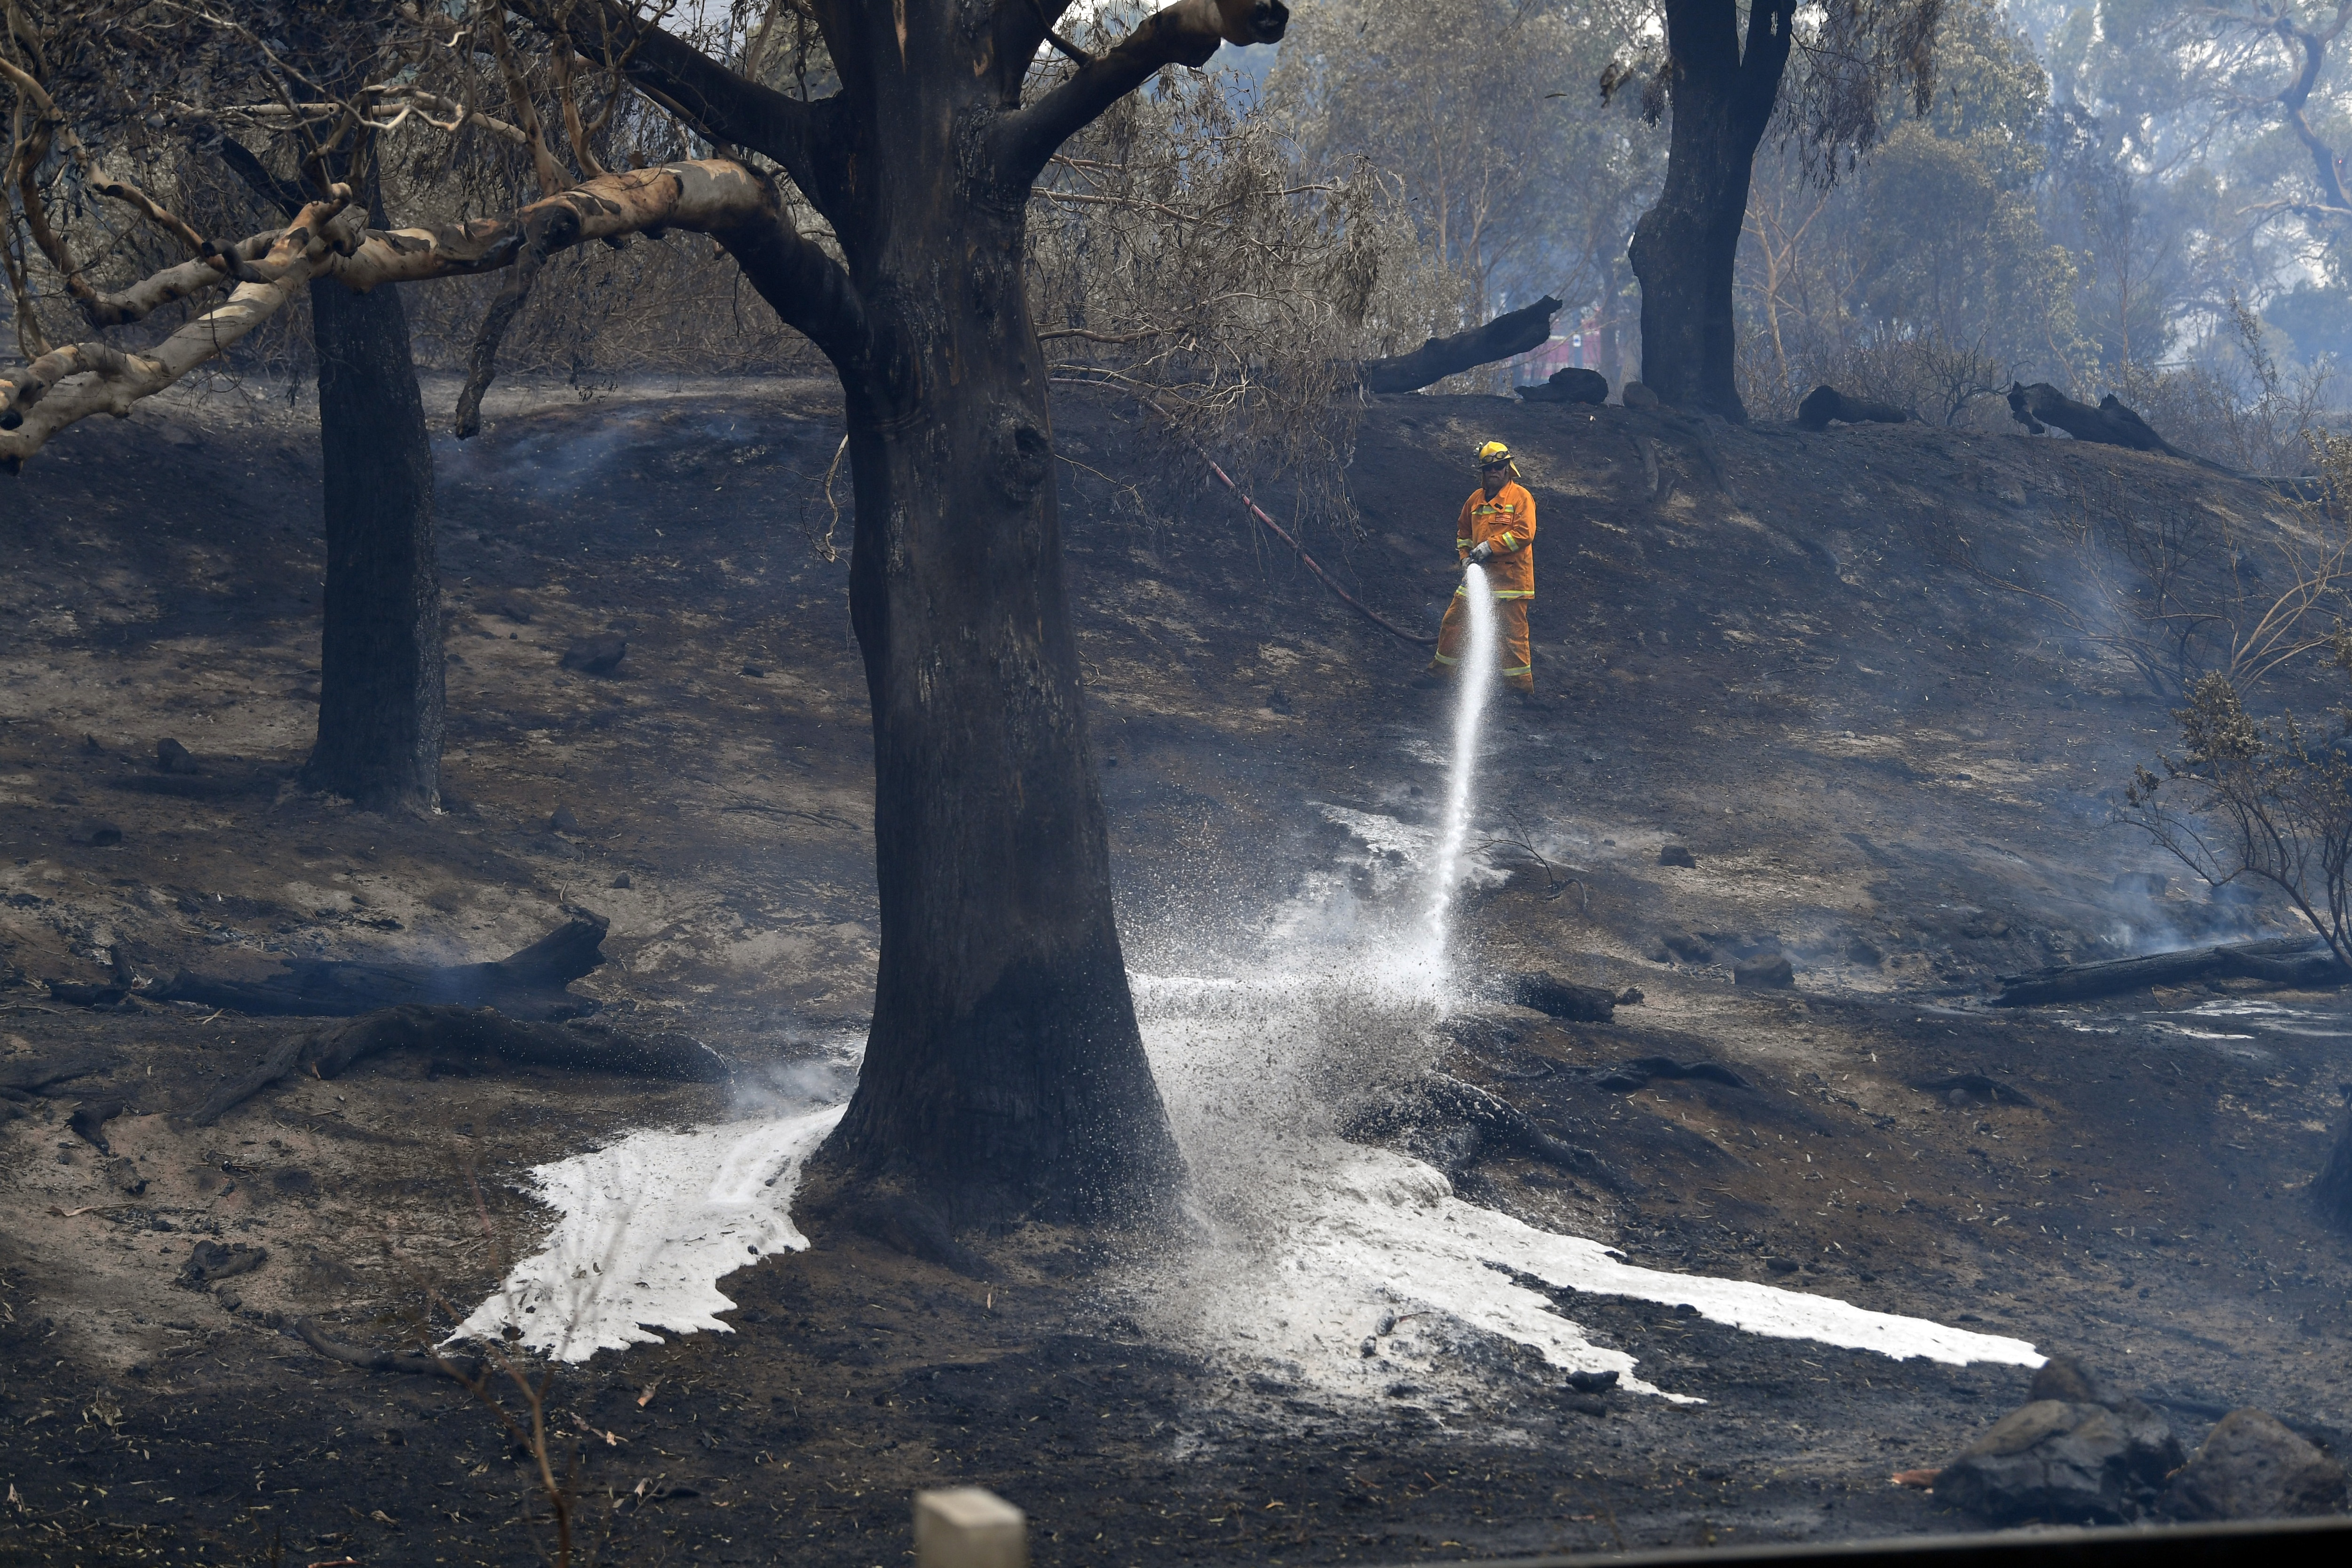 People leave parts of Australia's Victoria state as fire conditions worsen